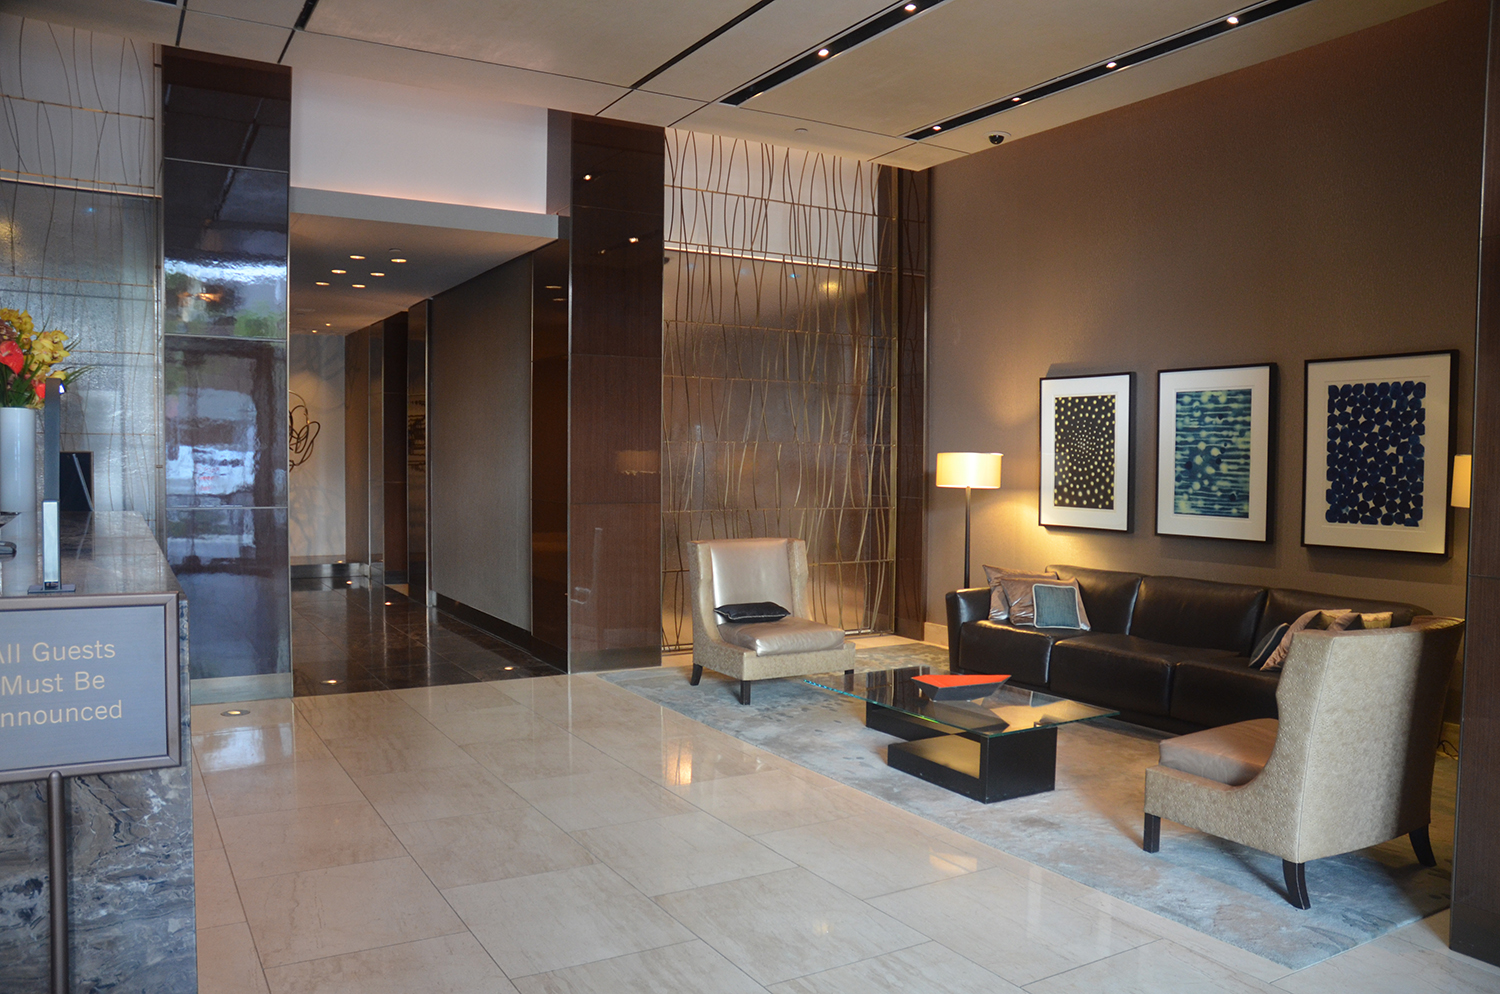 Current lobby at 460 West 42nd Street